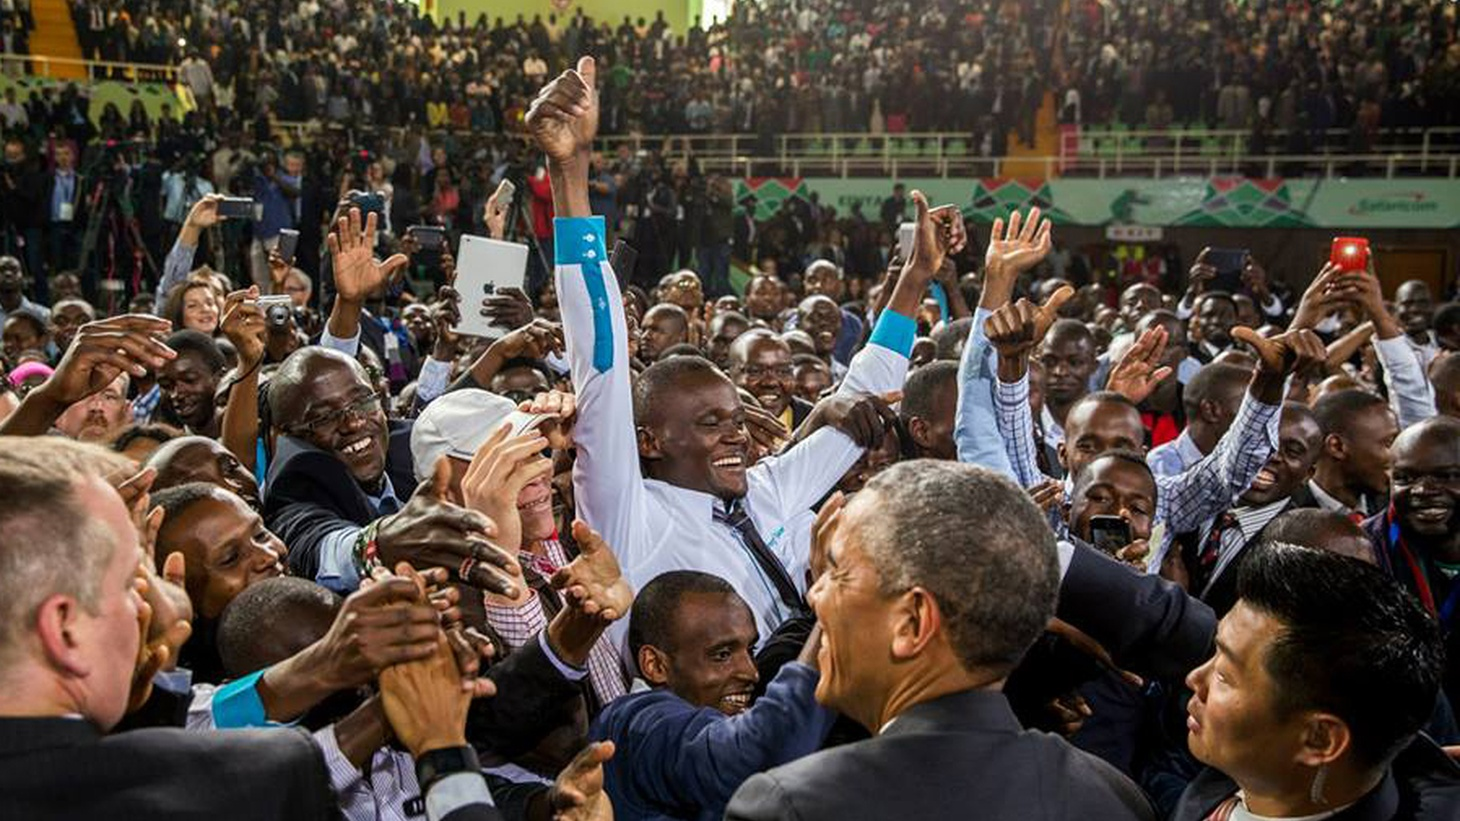 Barack Obama is the first sitting President to visit East Africa, where opportunities for US investment are threatened by both terrorism and counter-terrorism. We hear about his appearances in Kenya and Ethiopia.